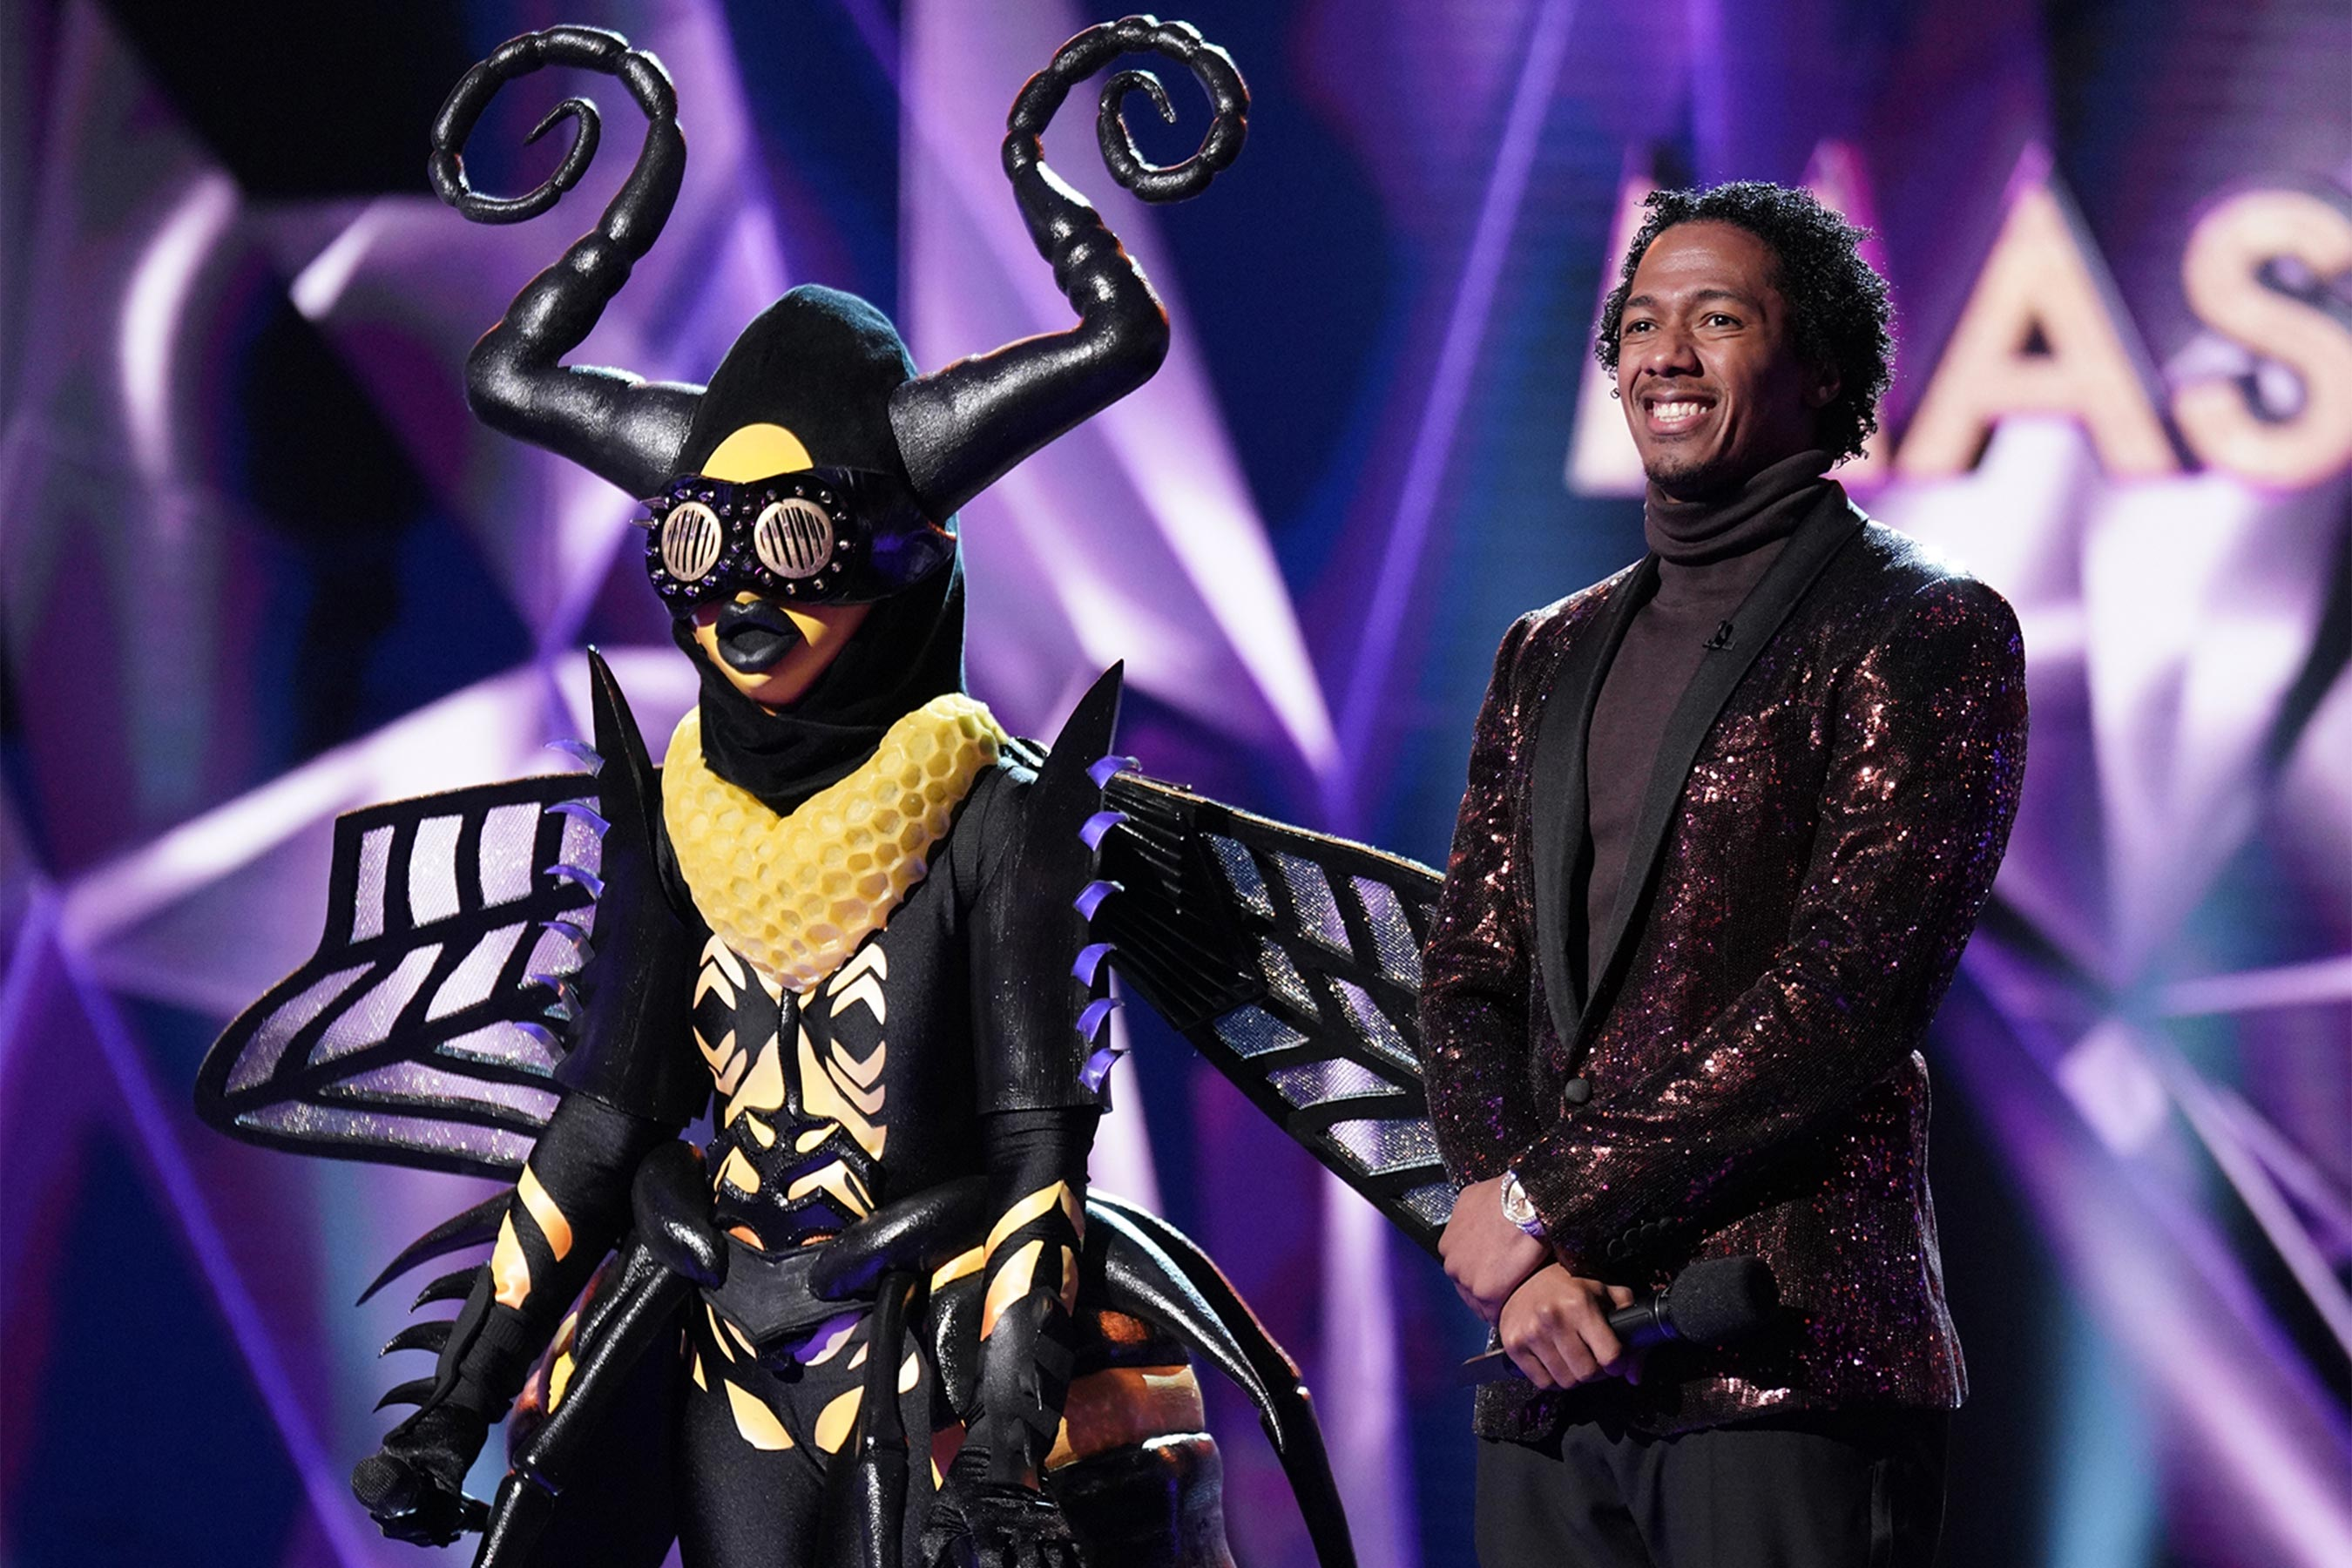 The Masked Singer - The Bee